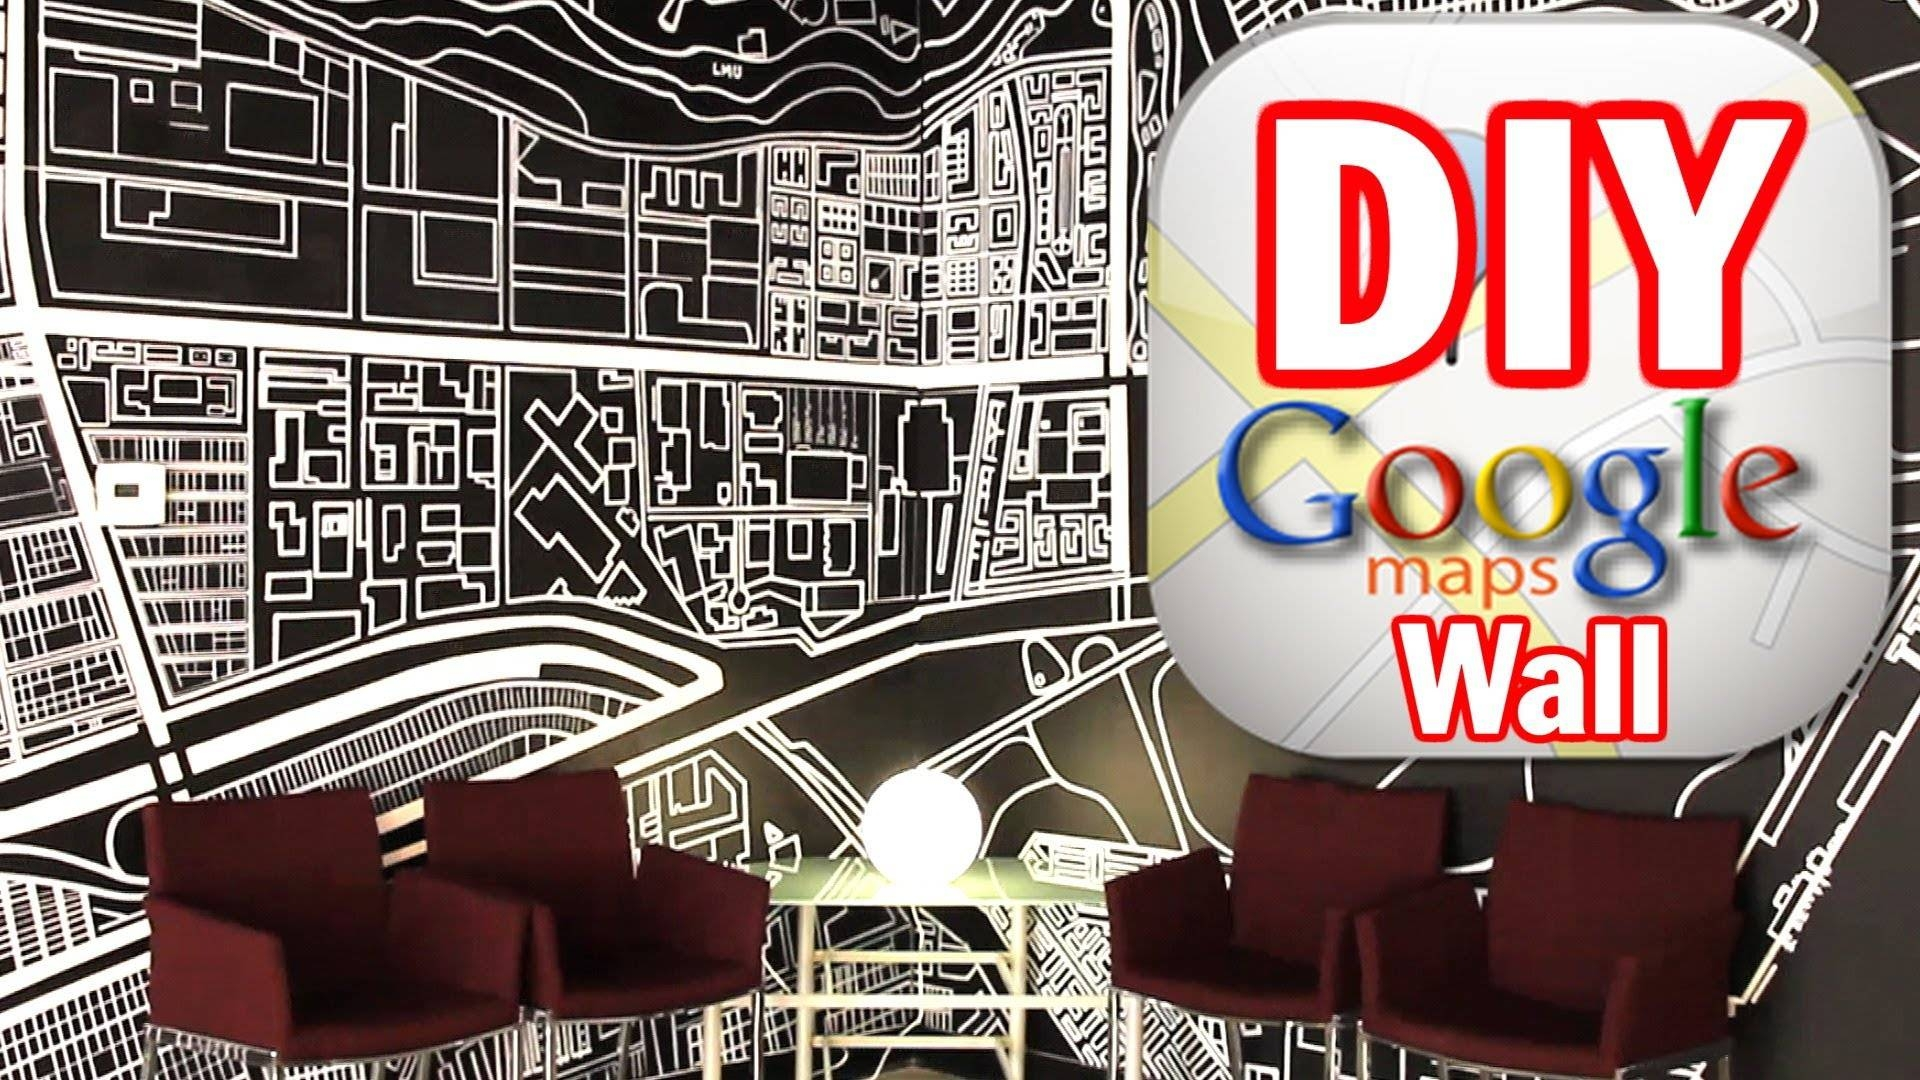 Diy Google Map Wall, Man Vs. Pin #5 - Youtube pertaining to Most Current Street Map Wall Art